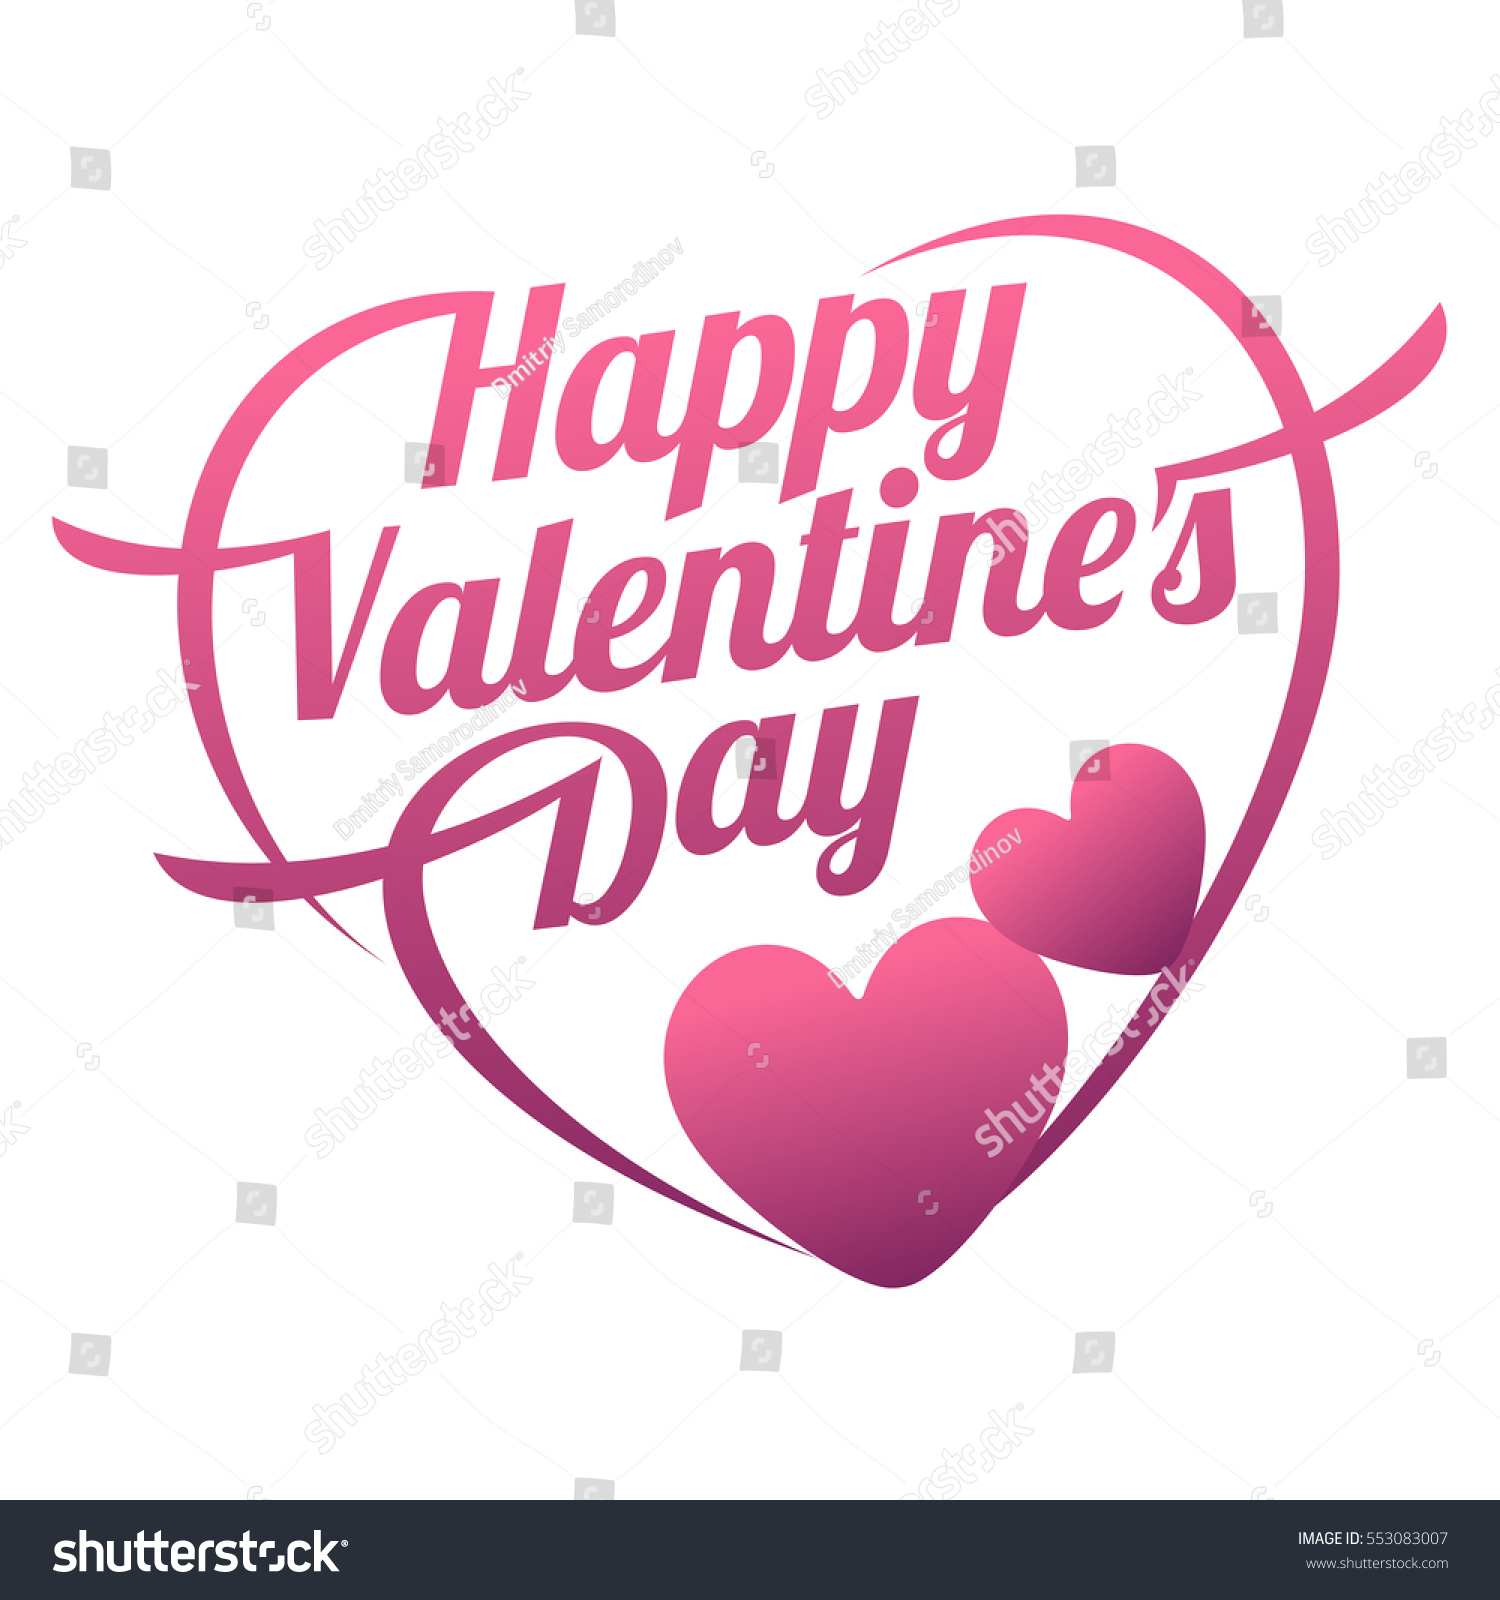 Vector Illustration Ard Happy Valentines Day Stock Vector Royalty